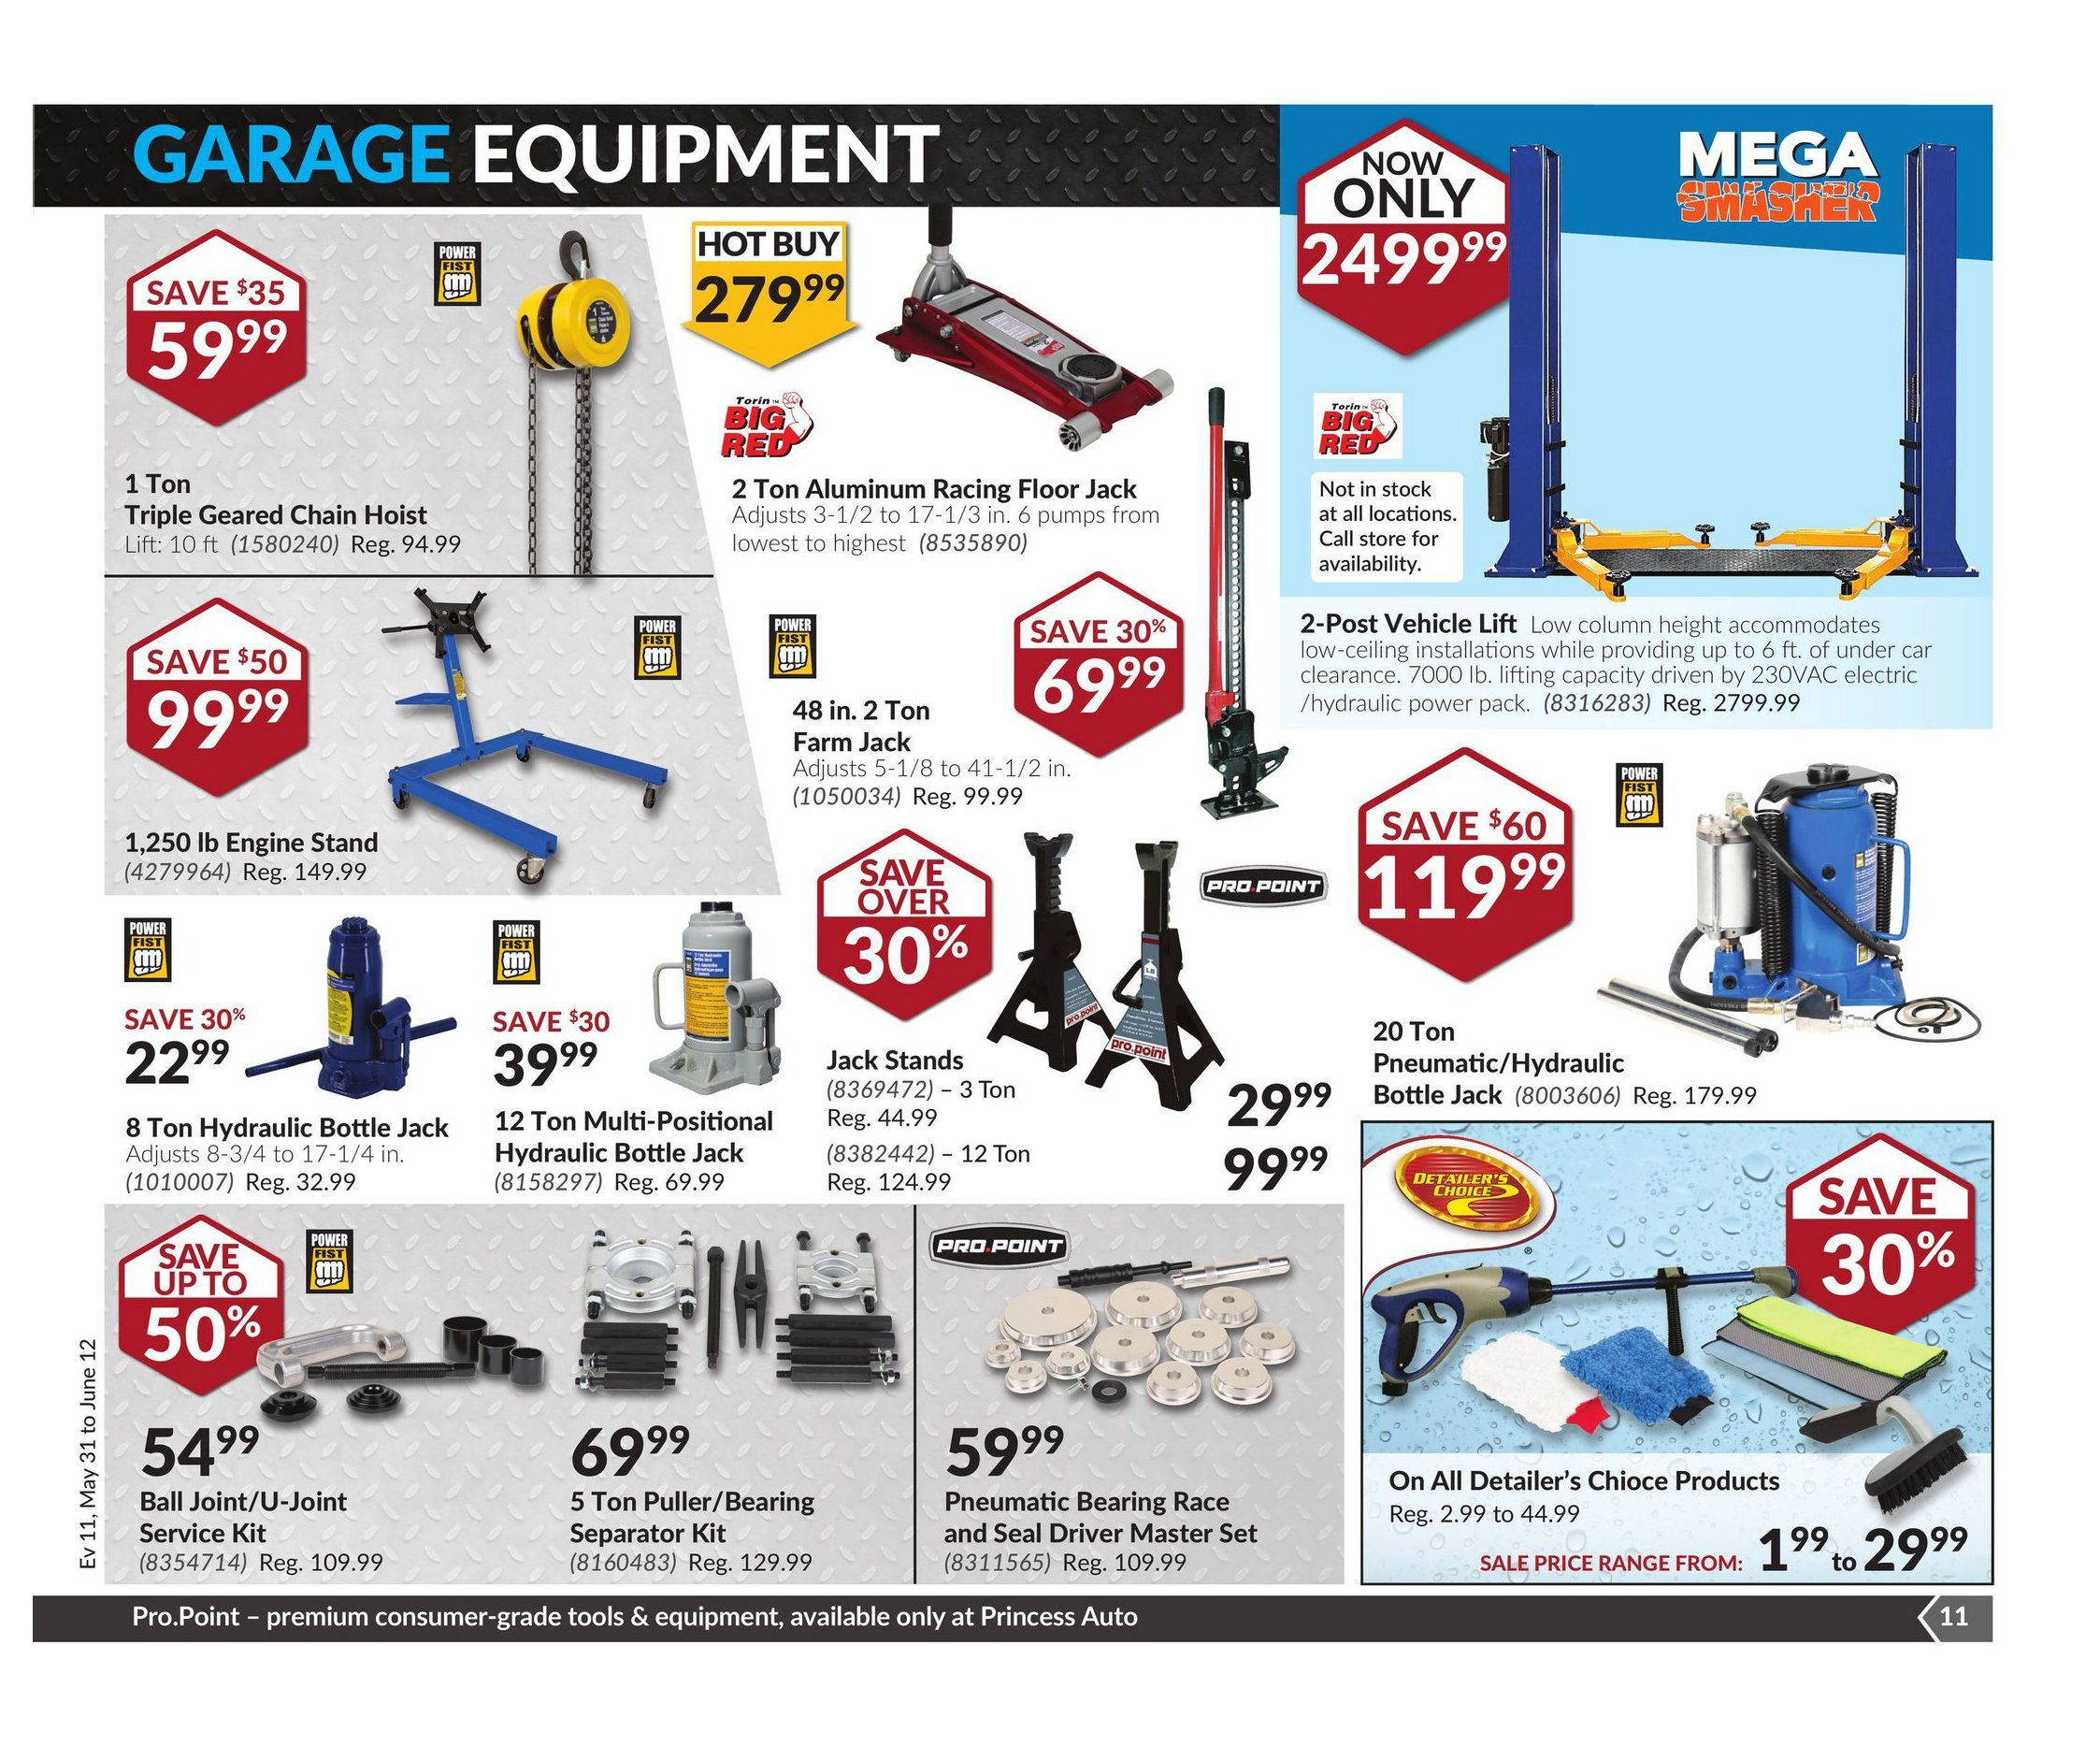 hardwood floor nailer princess auto of princess auto weekly flyer mega smasher fathers day edition with regard to princess auto weekly flyer mega smasher fathers day edition may 31 jun 12 redflagdeals com